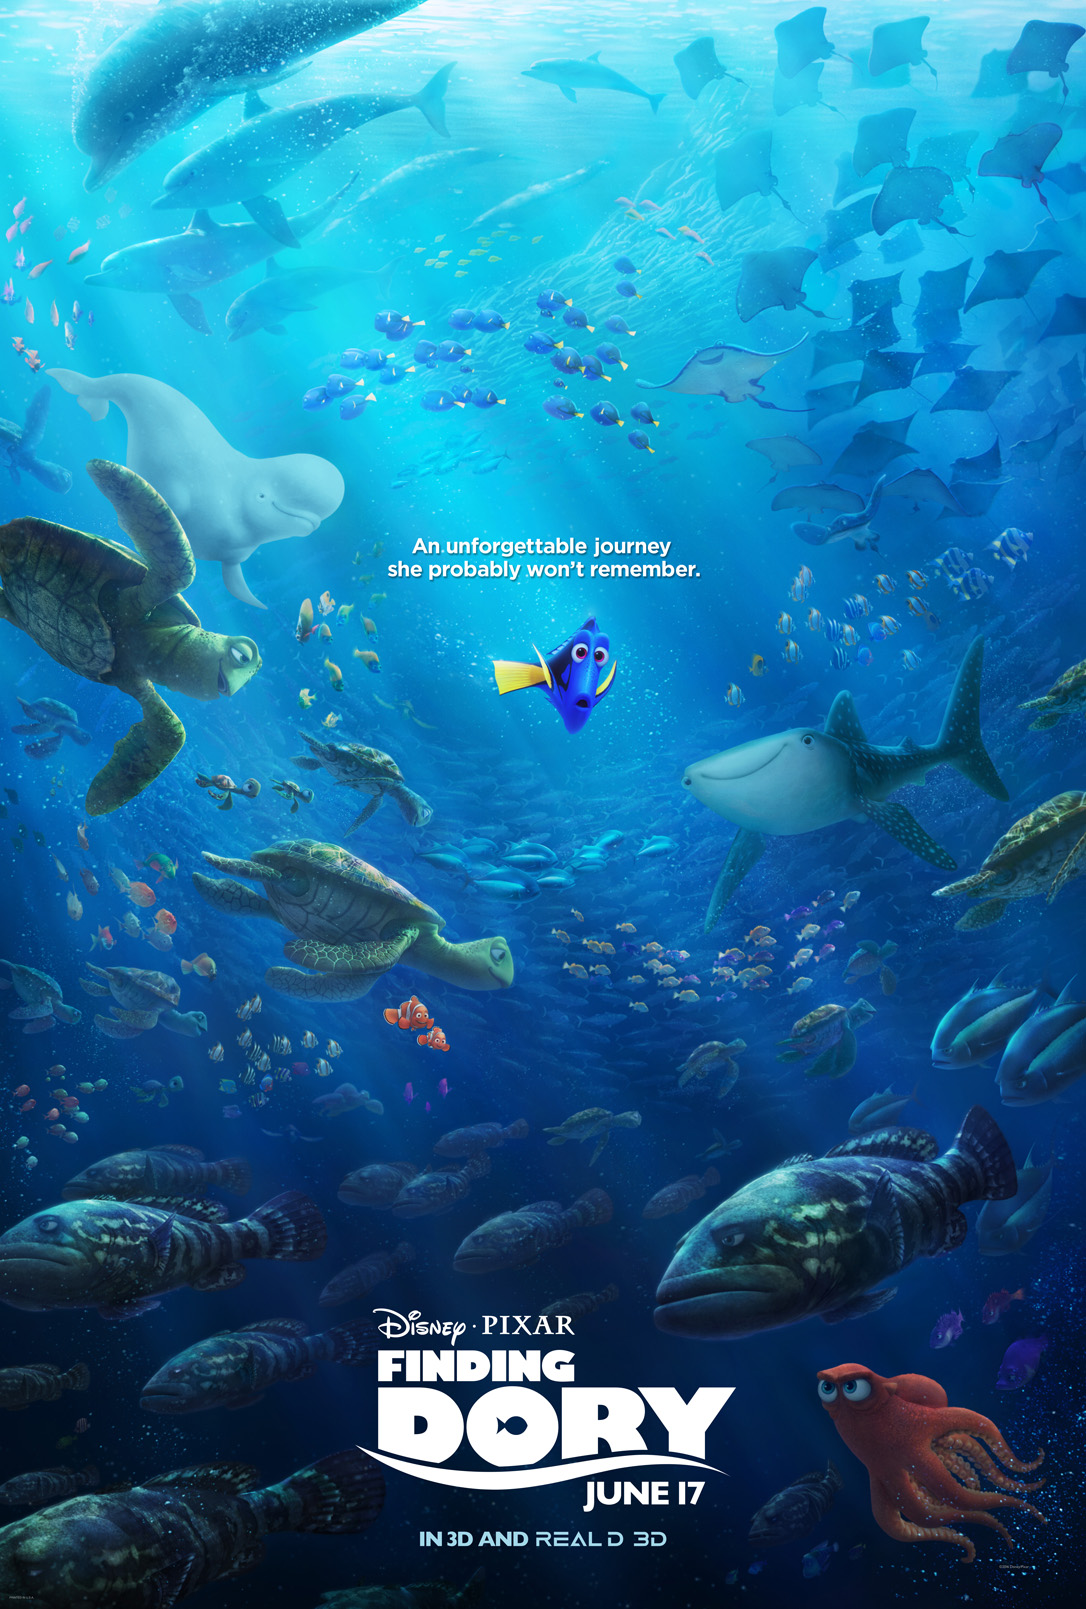 Finding Dory Is Now Playing in Theaters Everywhere! #FindingDory